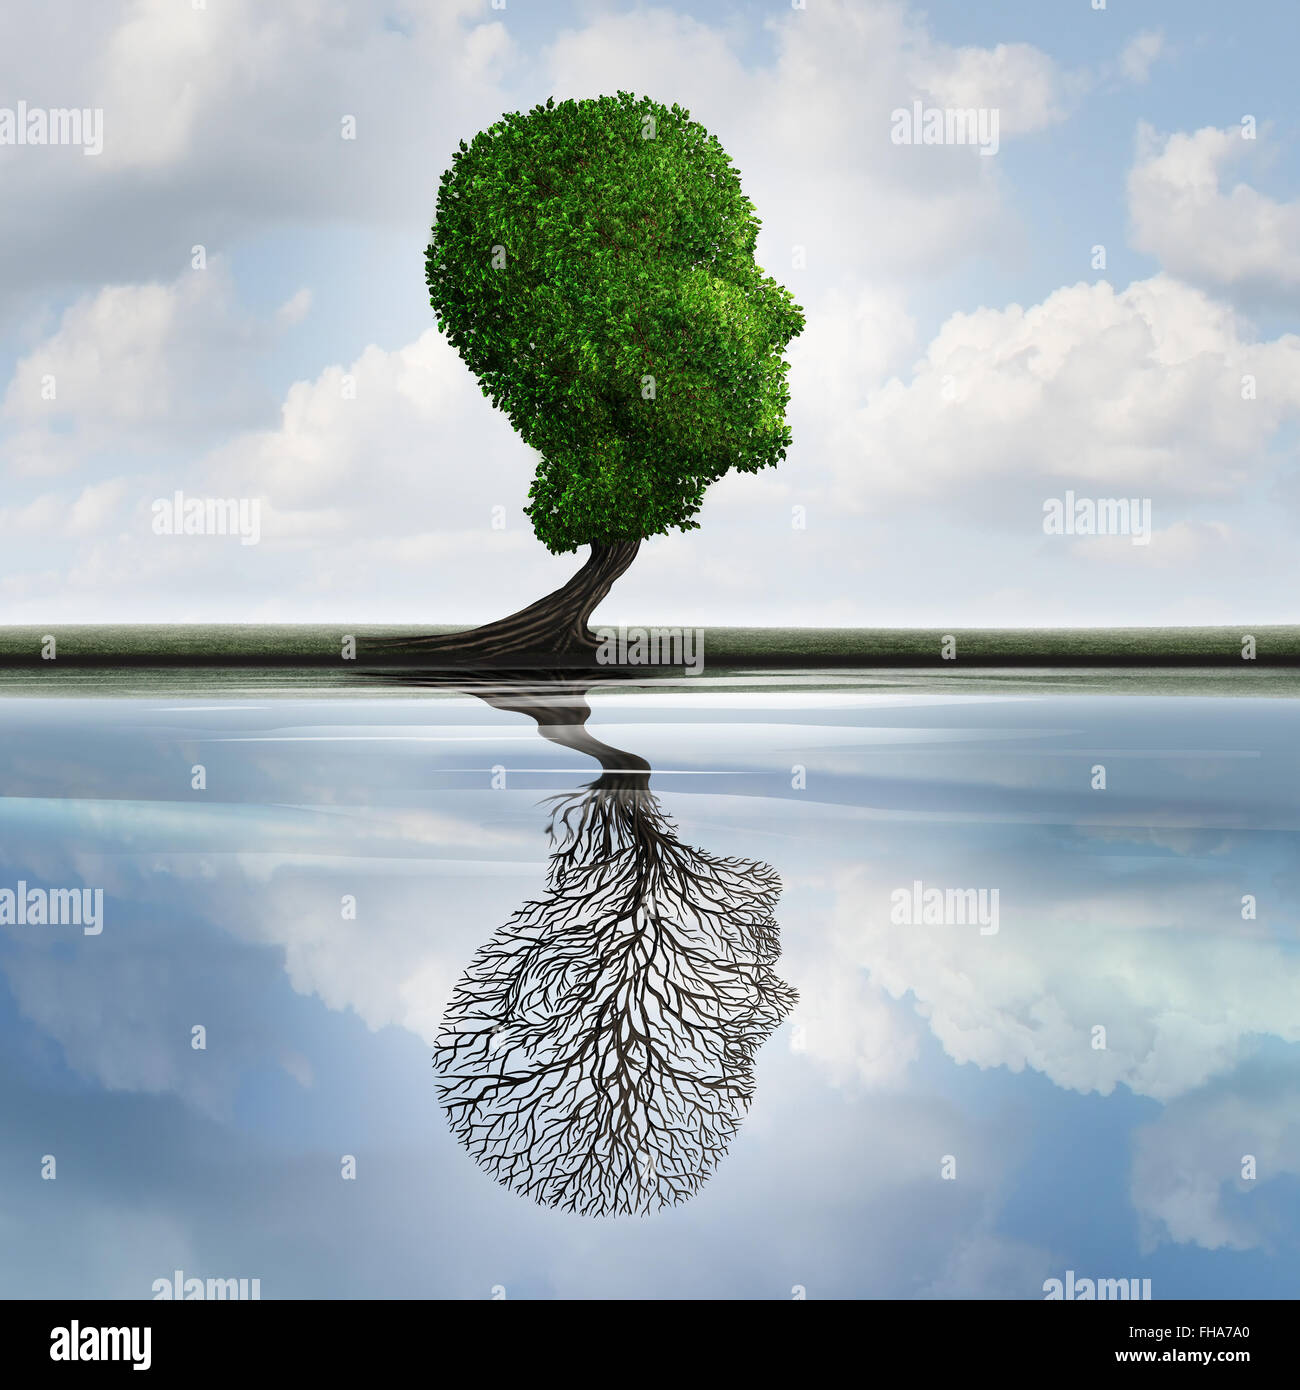 Hidden depression concept and private feelings symbol as a tree with leaves shaped as a human head with a reflection - Stock Image